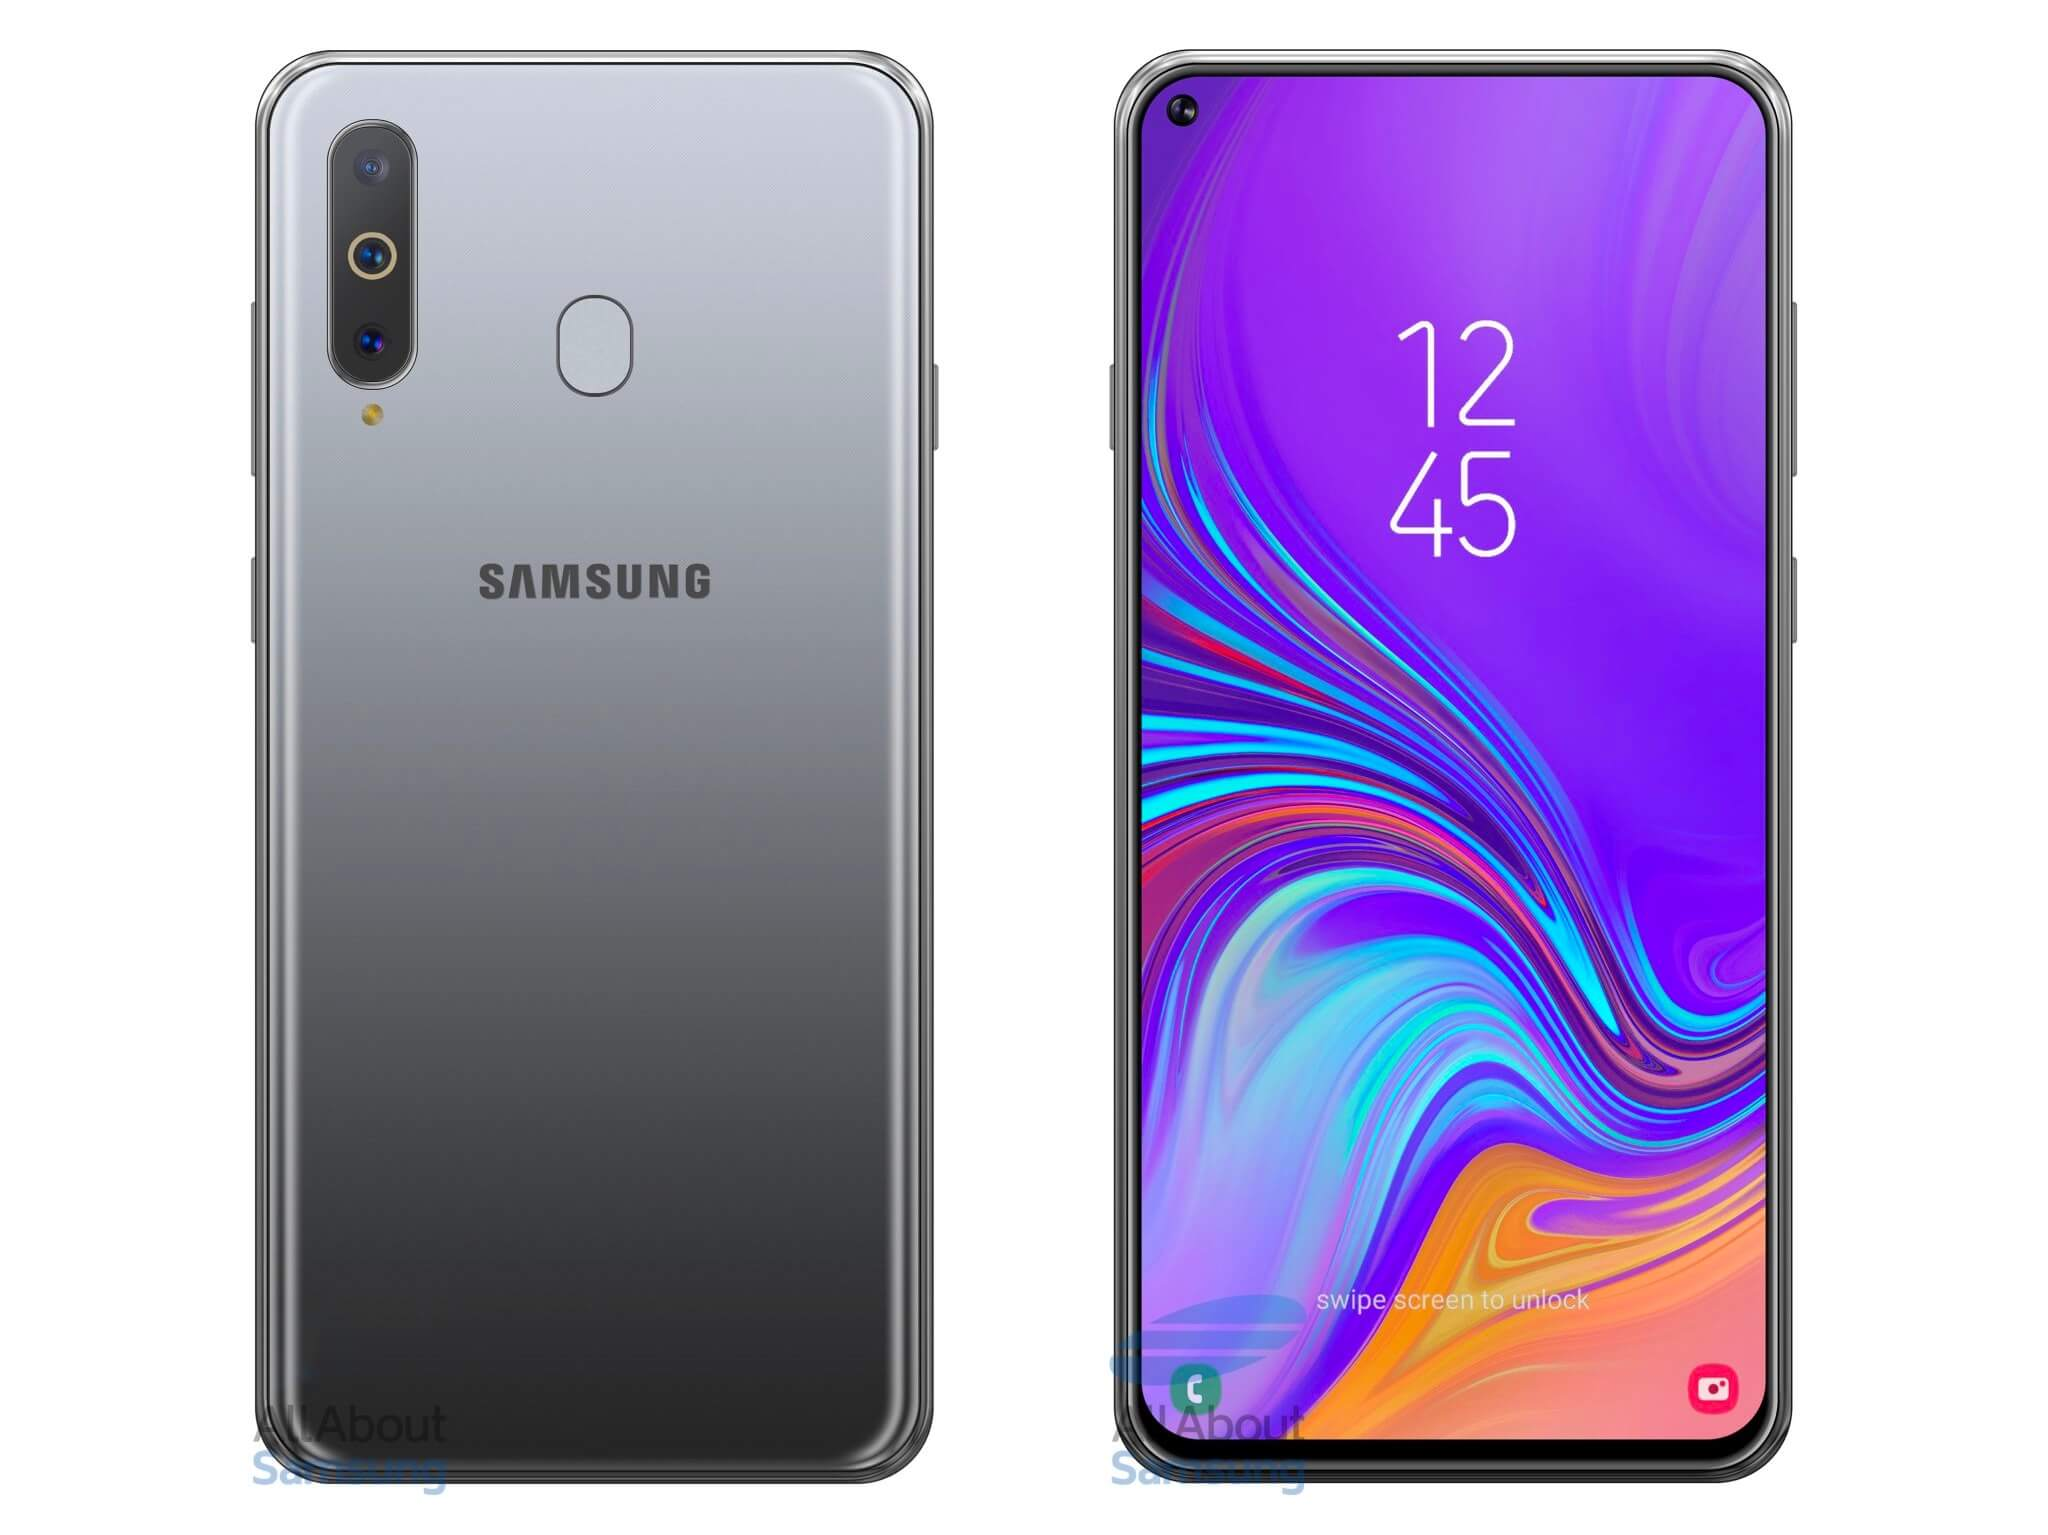 Samsung launches the Galaxy A8s with Infinity-O camera hole display